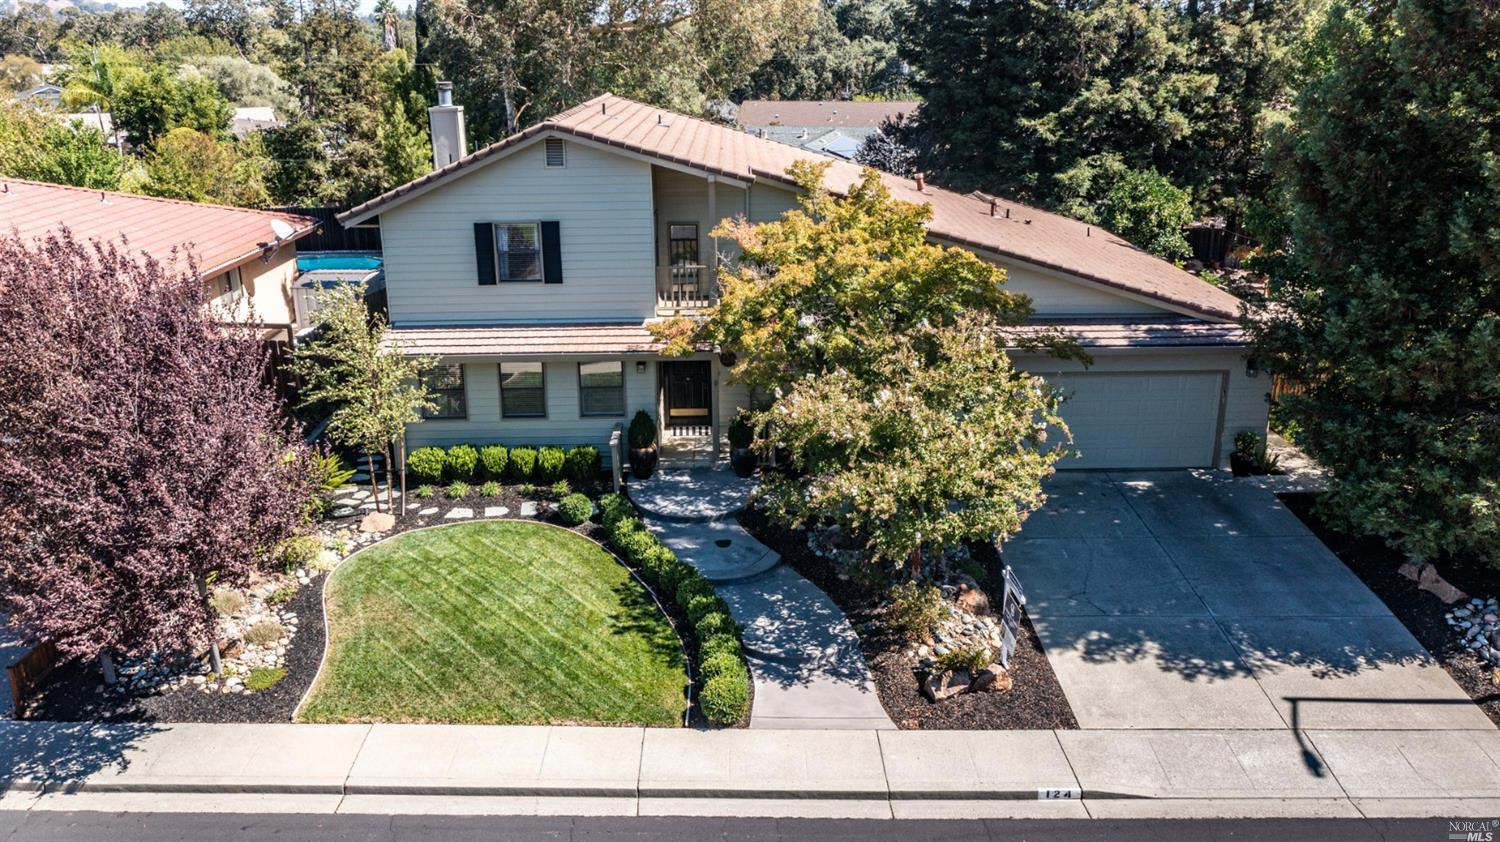 124 Hillview Drive, Vacaville, CA 95688